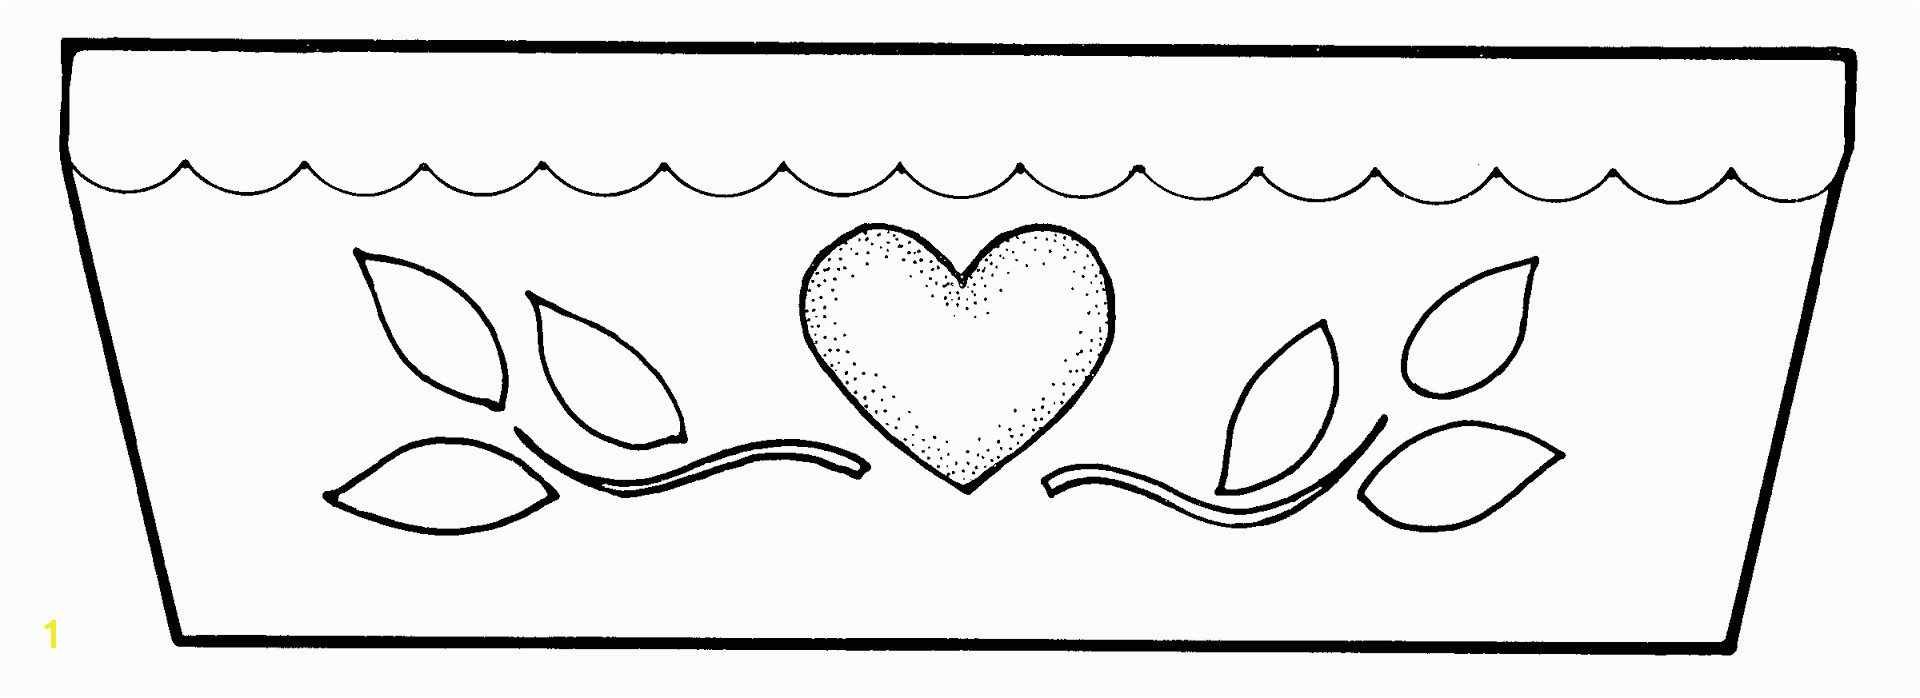 Helpful The Empty Pot Coloring Pages Emerging Download Flower Page In